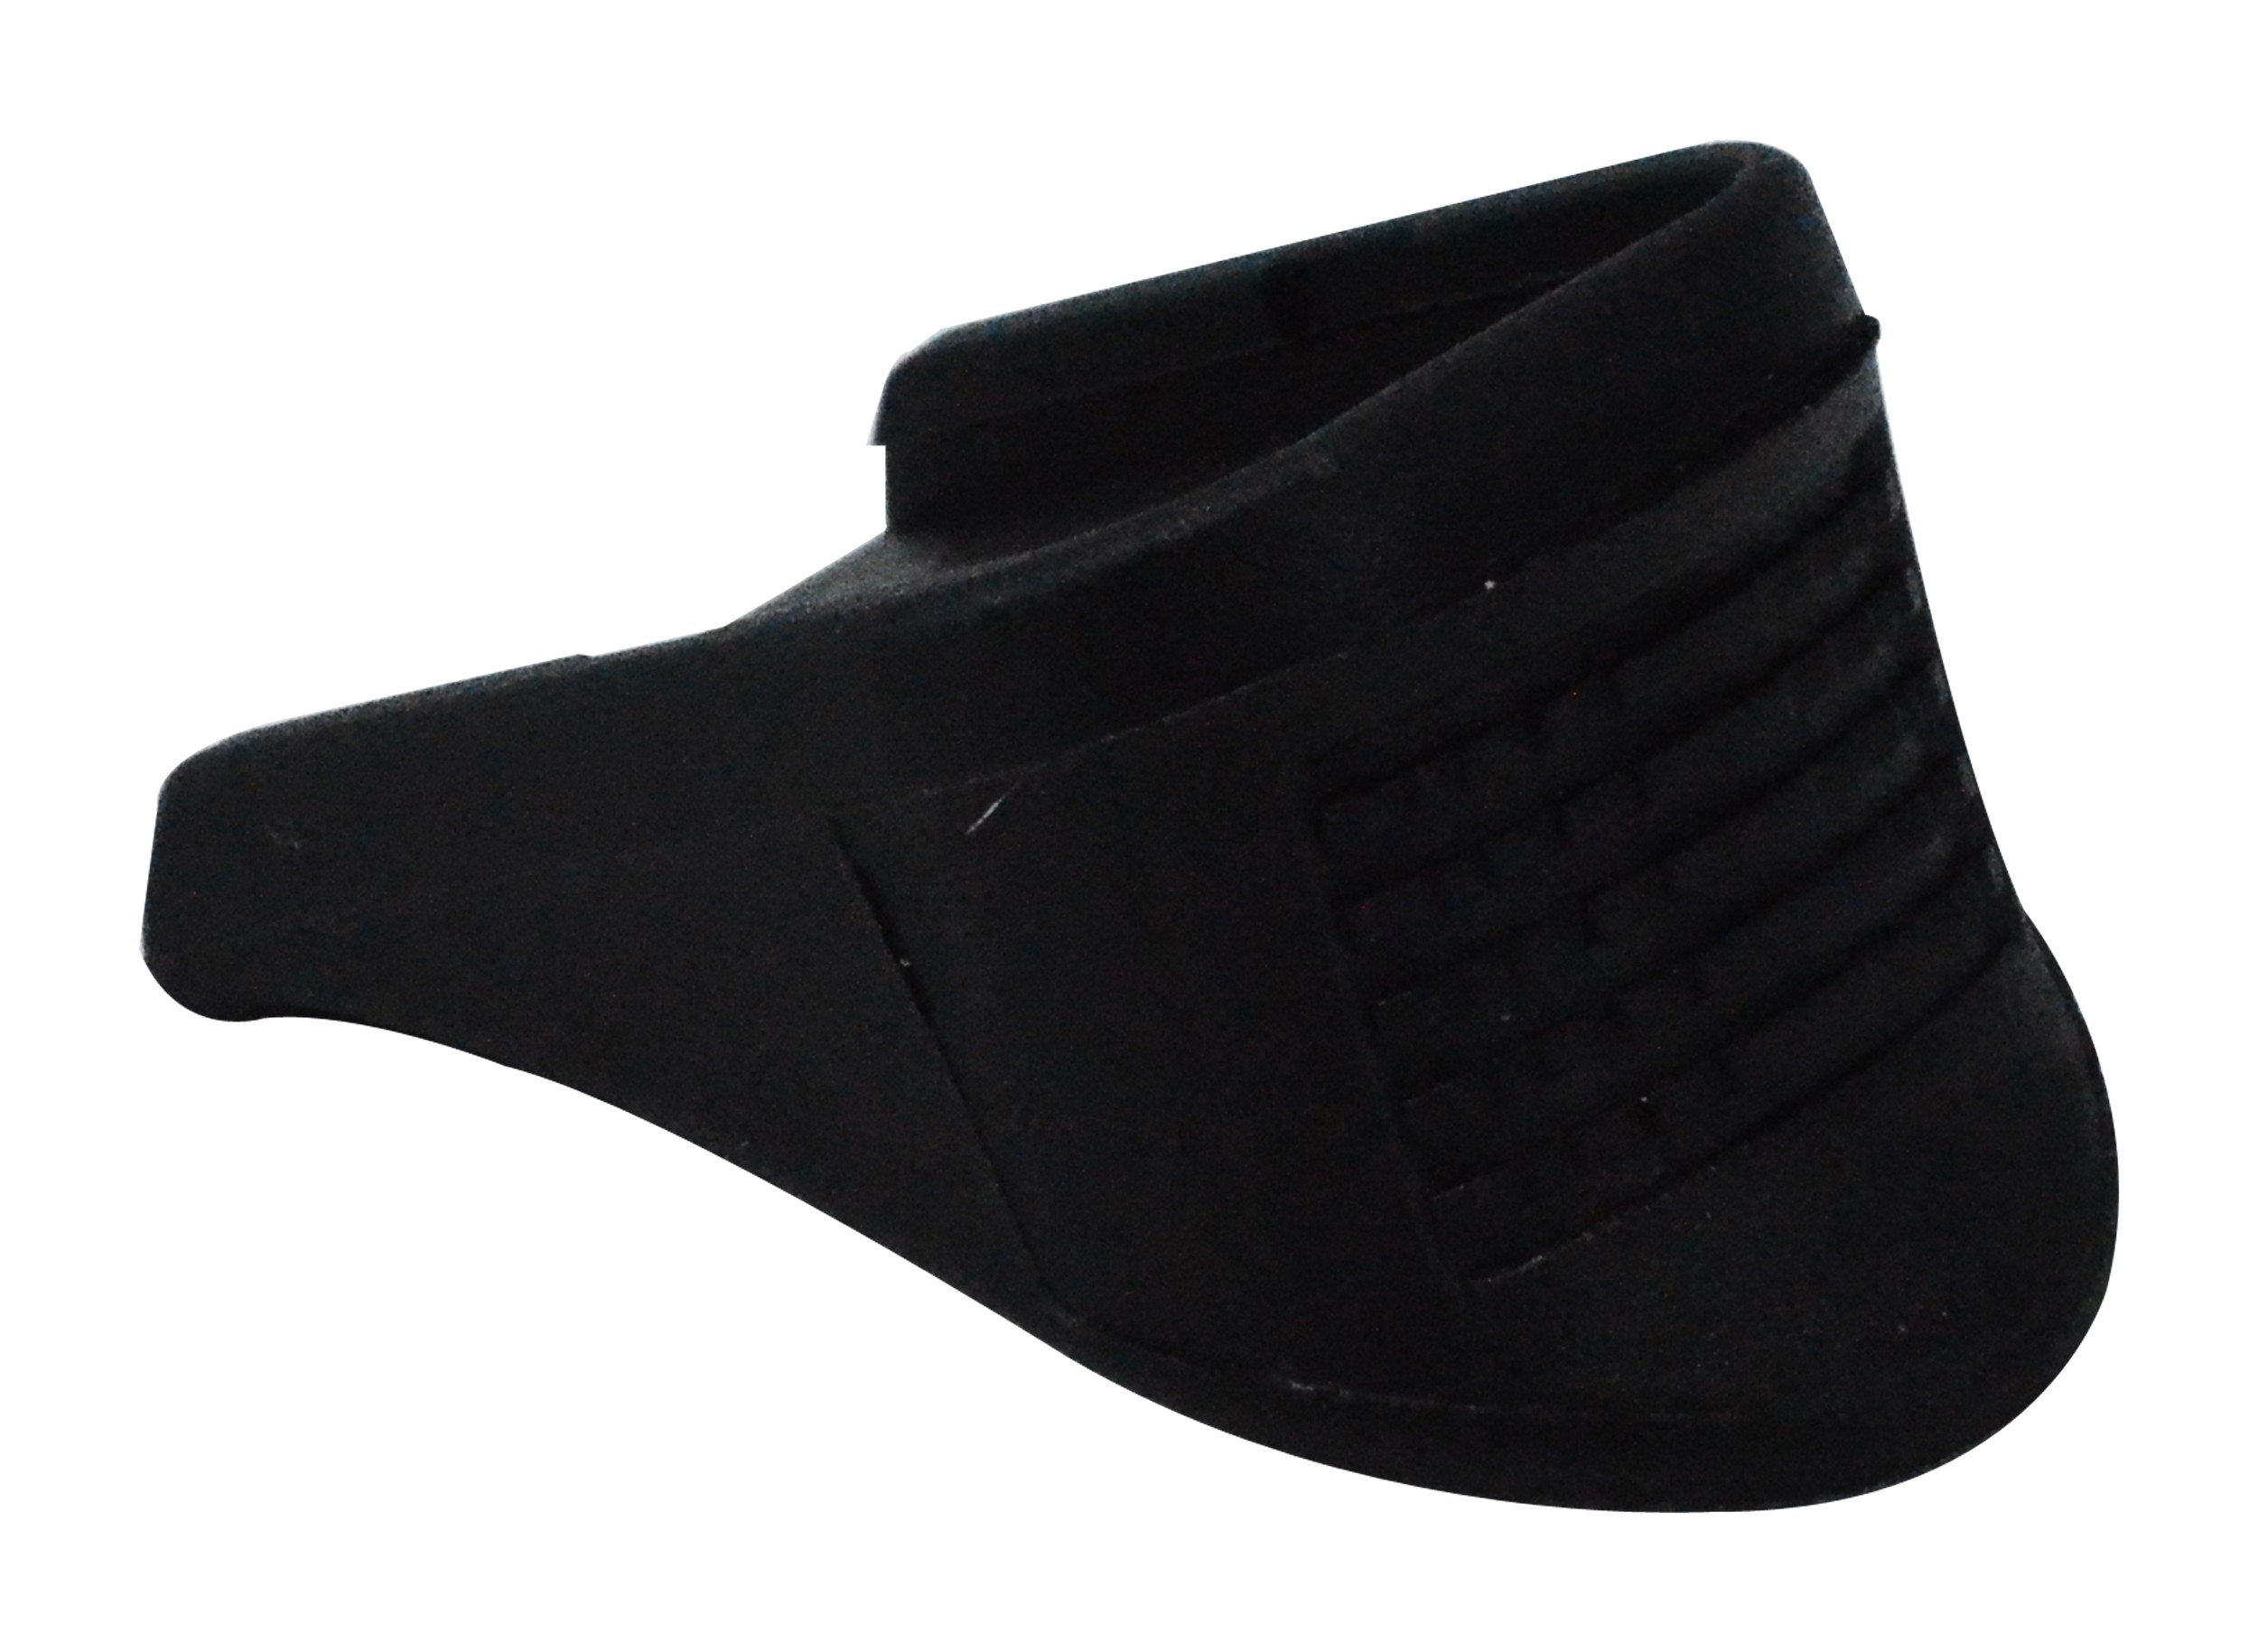 Grip Extension - Fits GLOCK Model 26273339